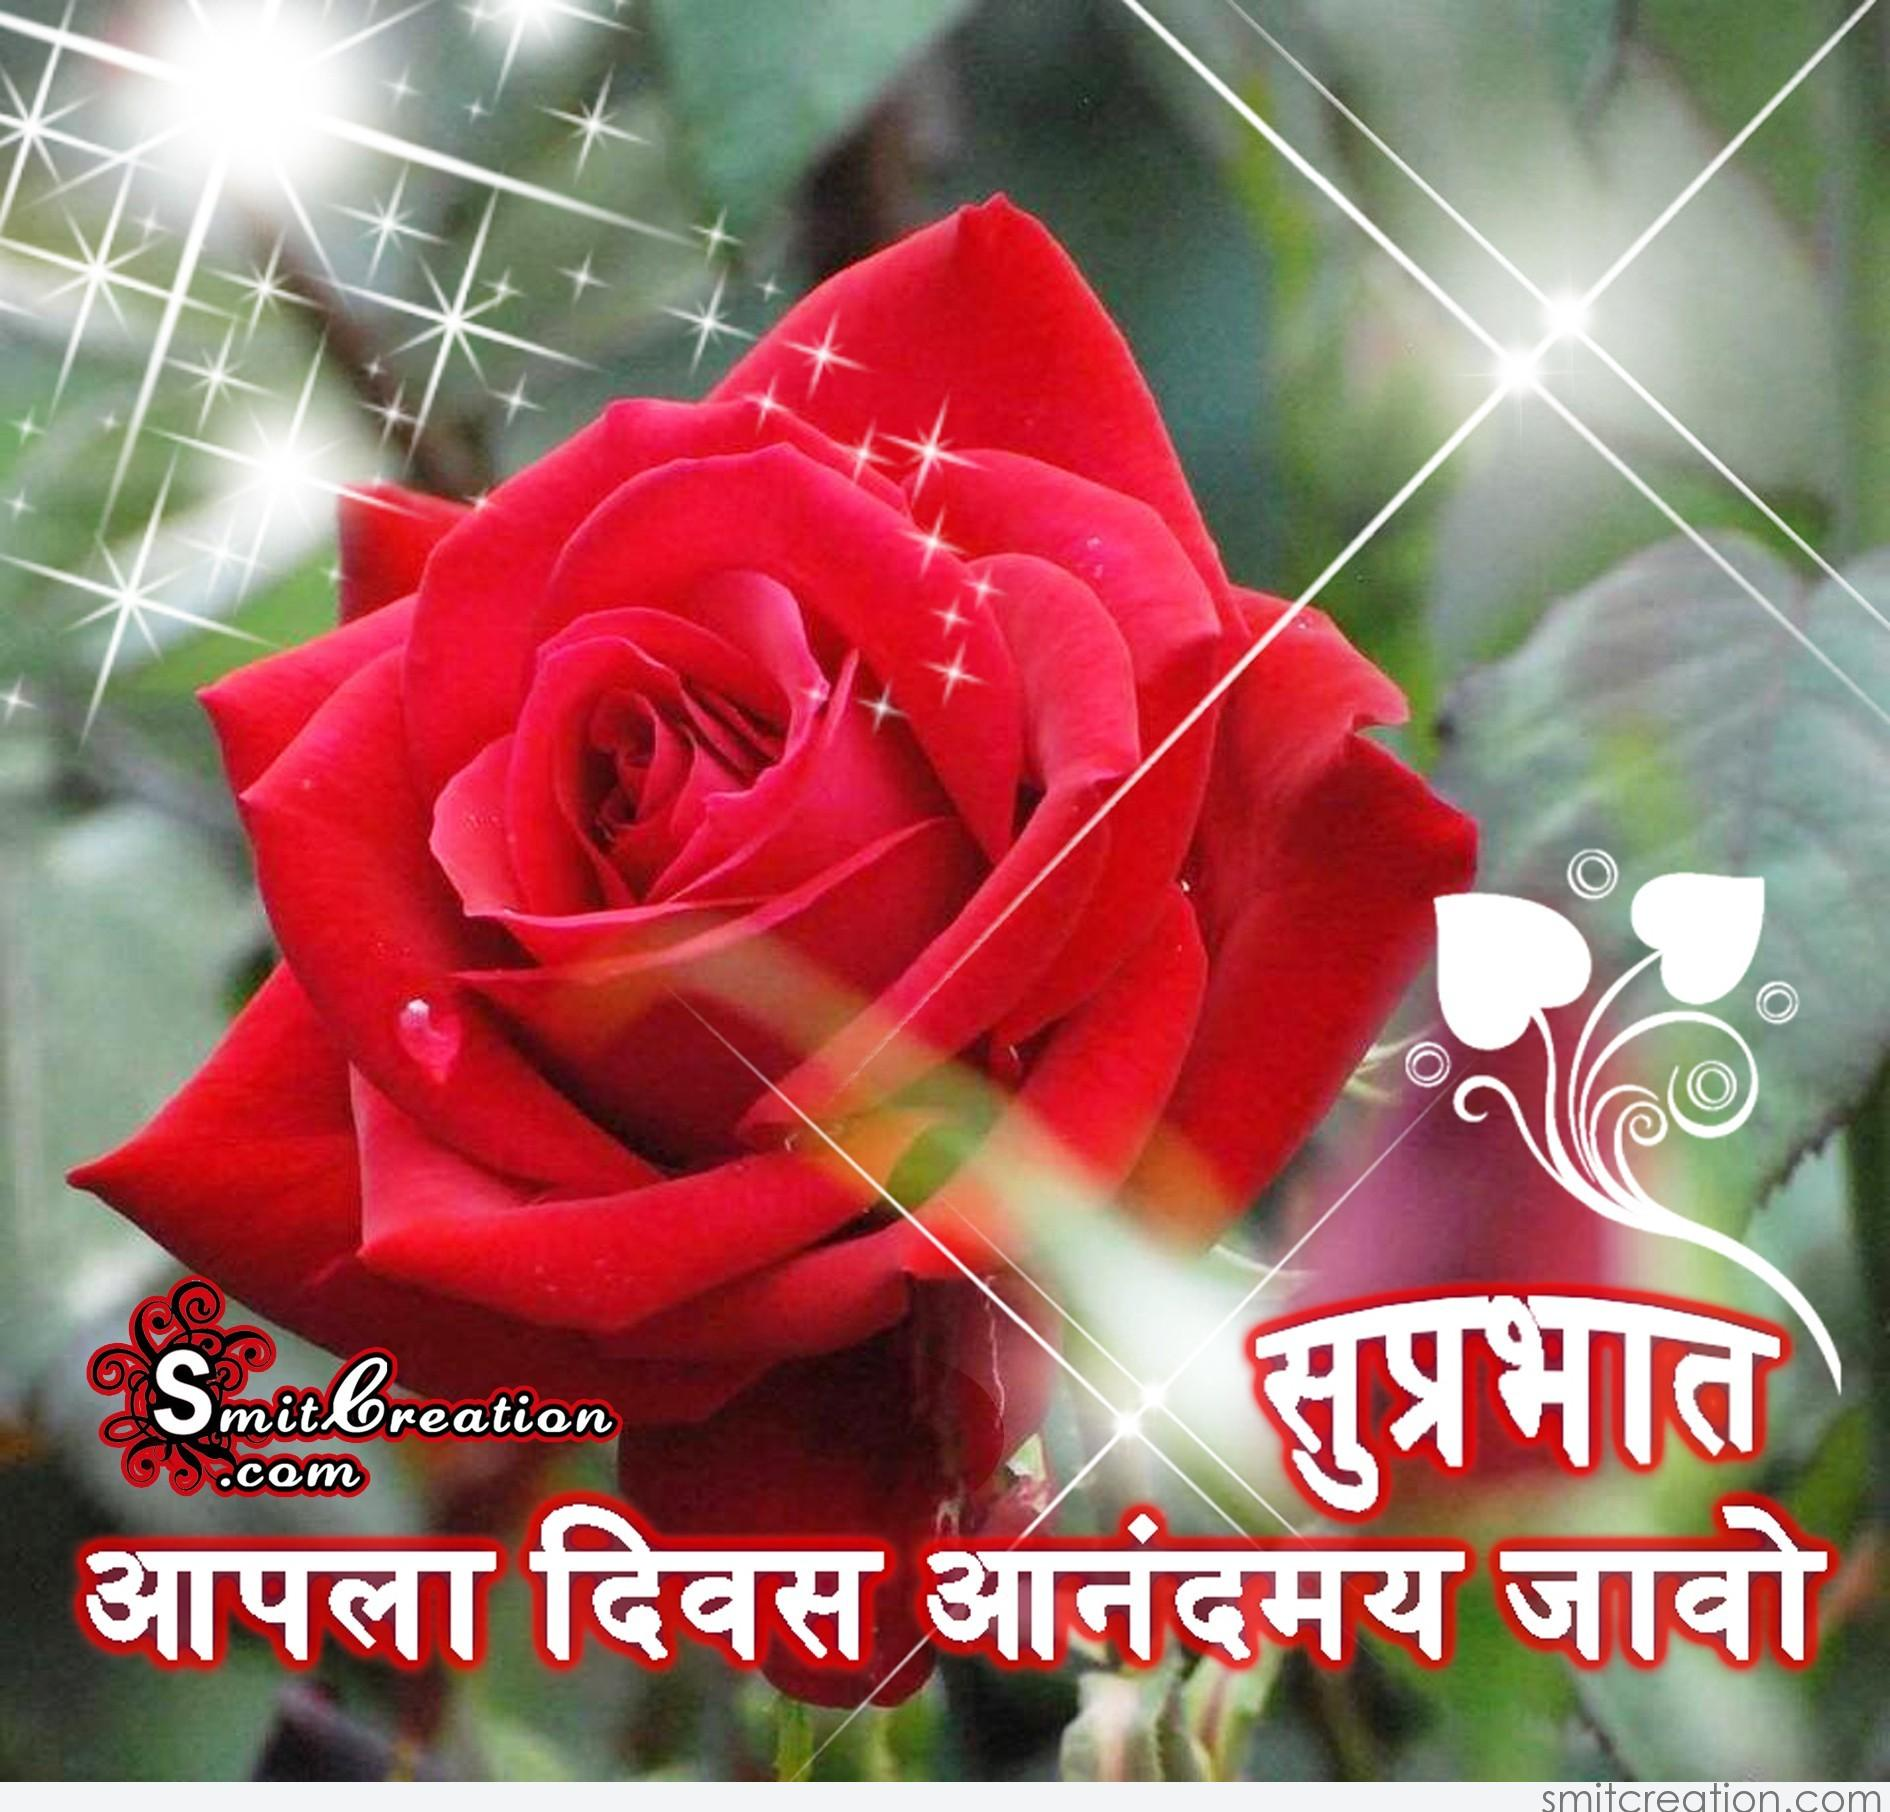 Shubh-Sakaal Marathi Pictures and Graphics - SmitCreation